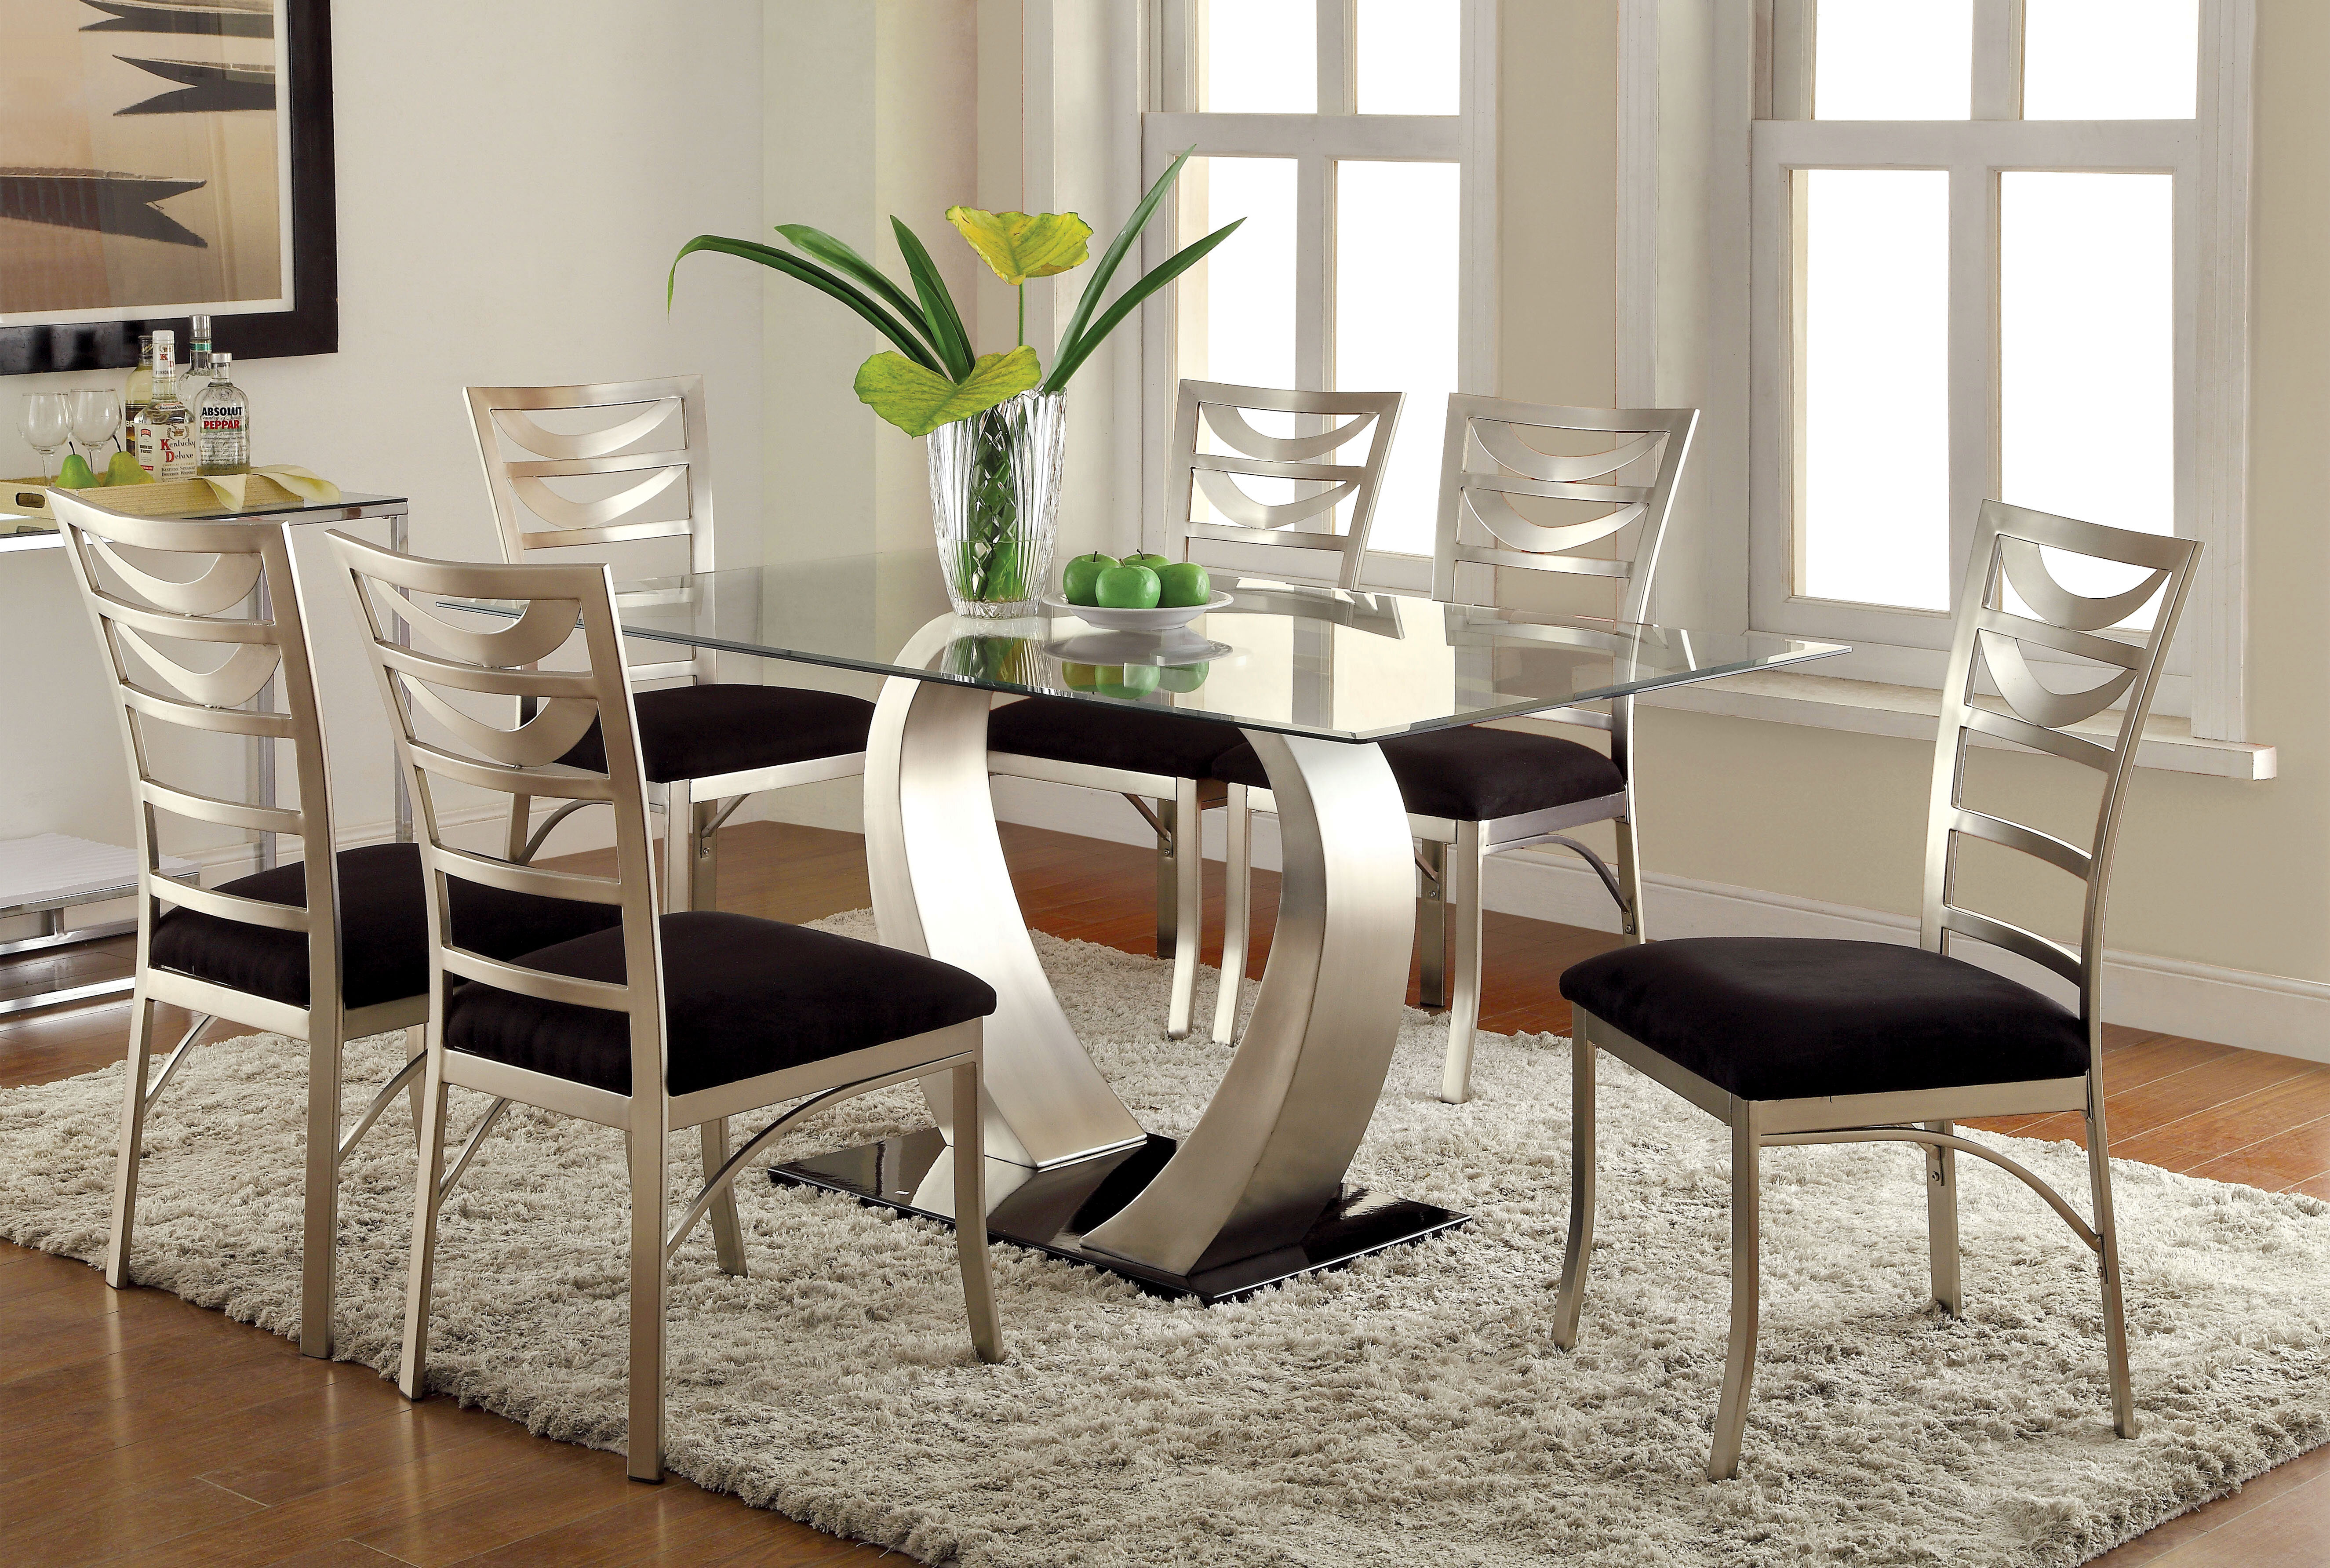 Picture of: Glass Kitchen Dining Room Table Sets You Ll Love In 2020 Wayfair